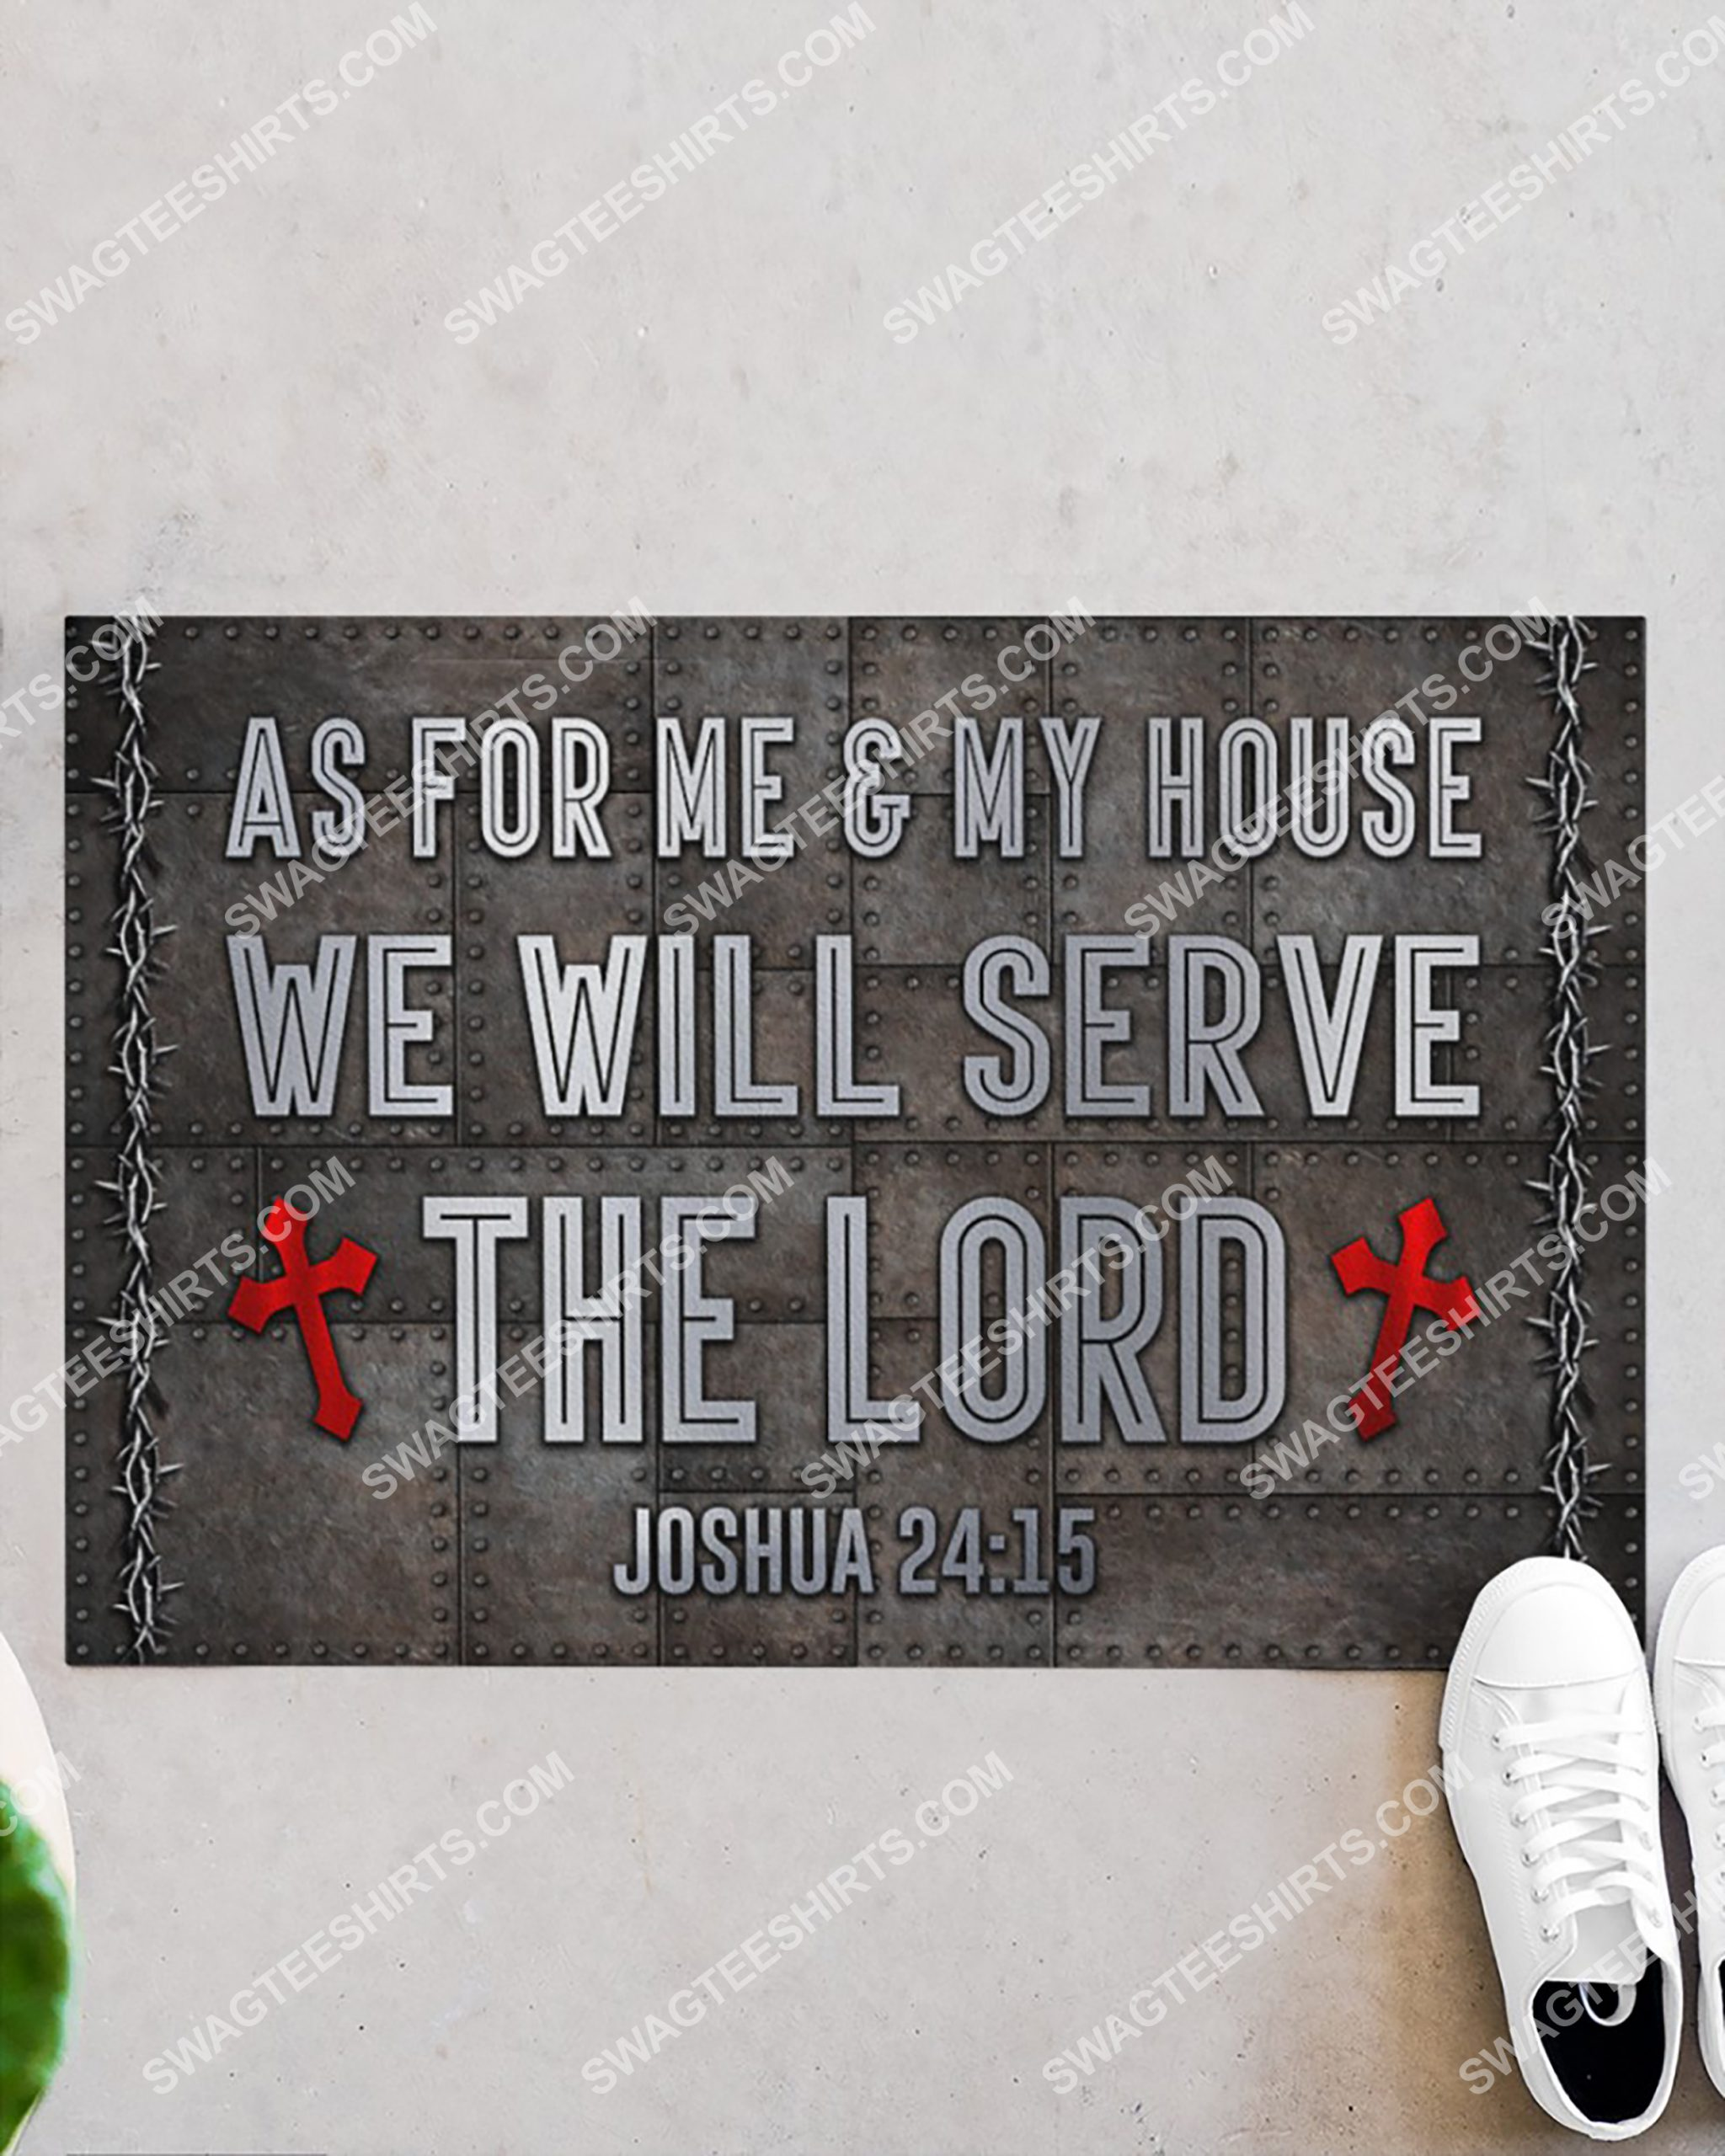 as for me and my house we will serve the Lord doormat 2(1)